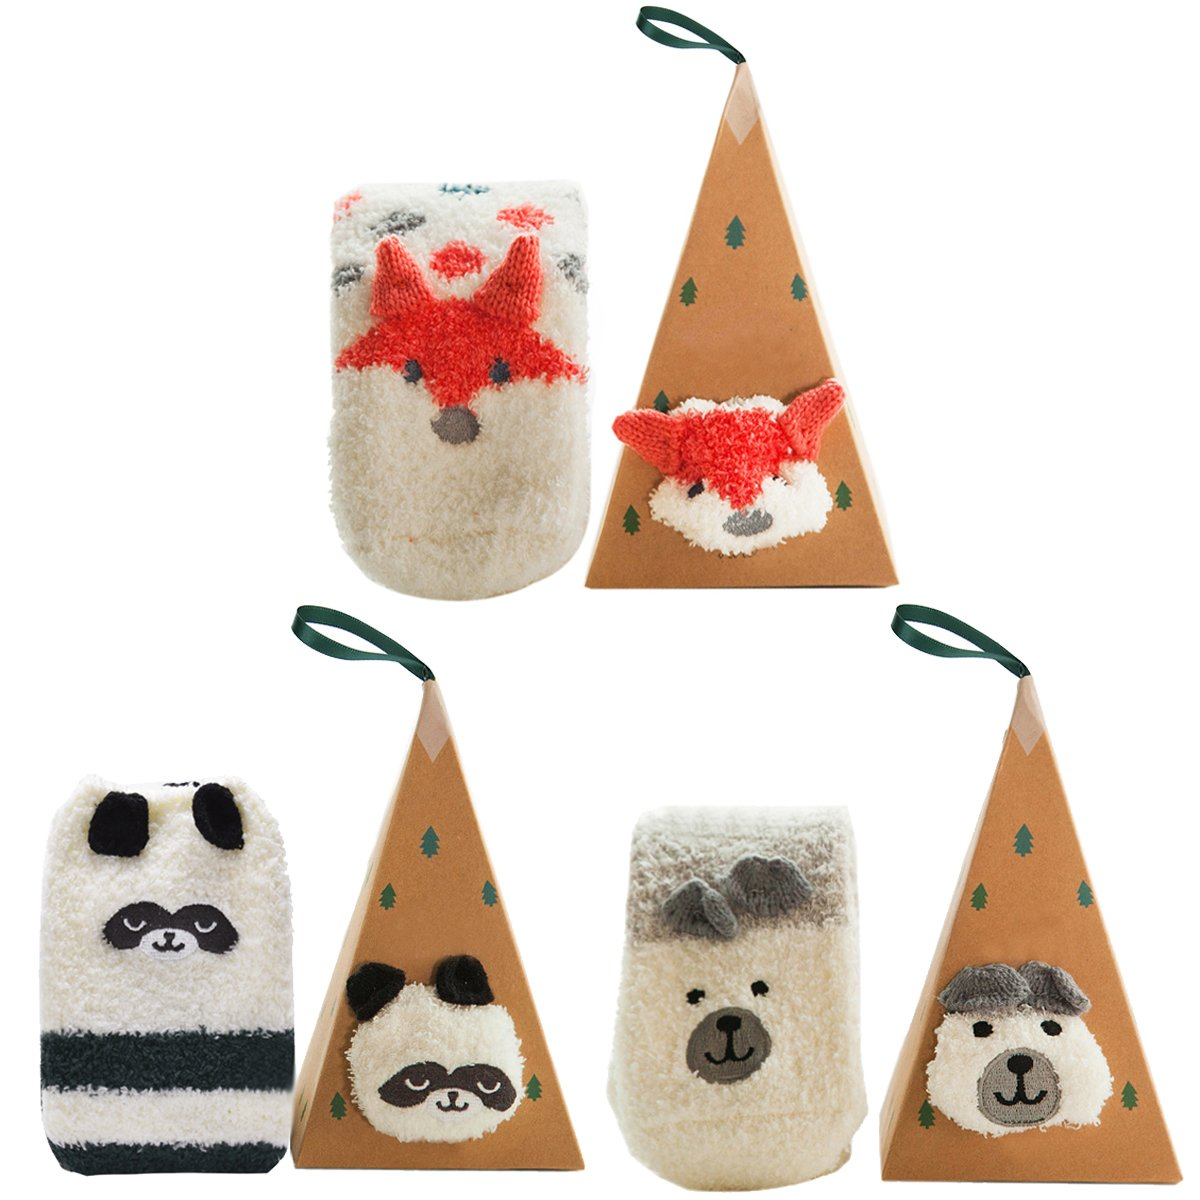 Christmas Fuzzy Socks, Aniwon 3 Pairs Cute Animal Natural Stretchy Novelty Gifts Stockings Crew Wool Funny Socks with Boxes for Women and Girls